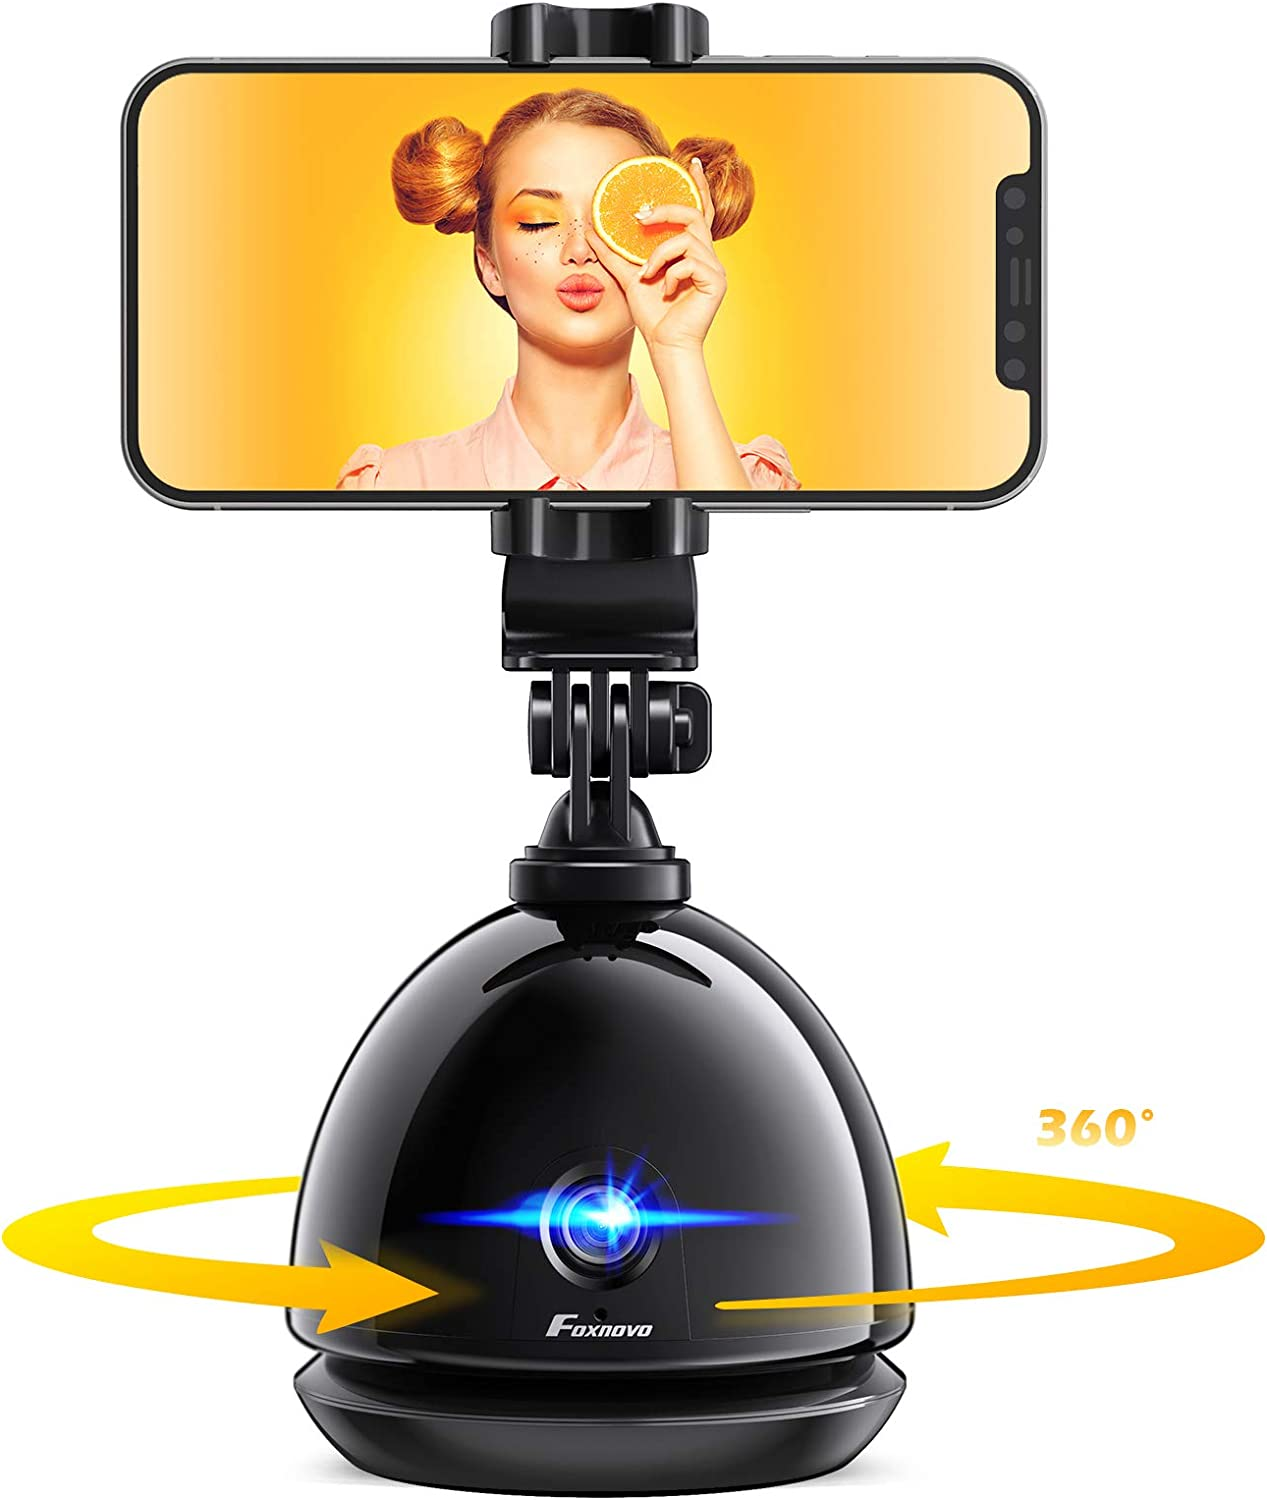 【NO APP】 Foxnovo 360/°Rotation Auto Face Tracker Stabilizer Cell Phone Holder Phone Smart Tracking Selfie Tripod Podcasting|Vlogging|Video Camera Stick Mount for iPhone//Android Phone